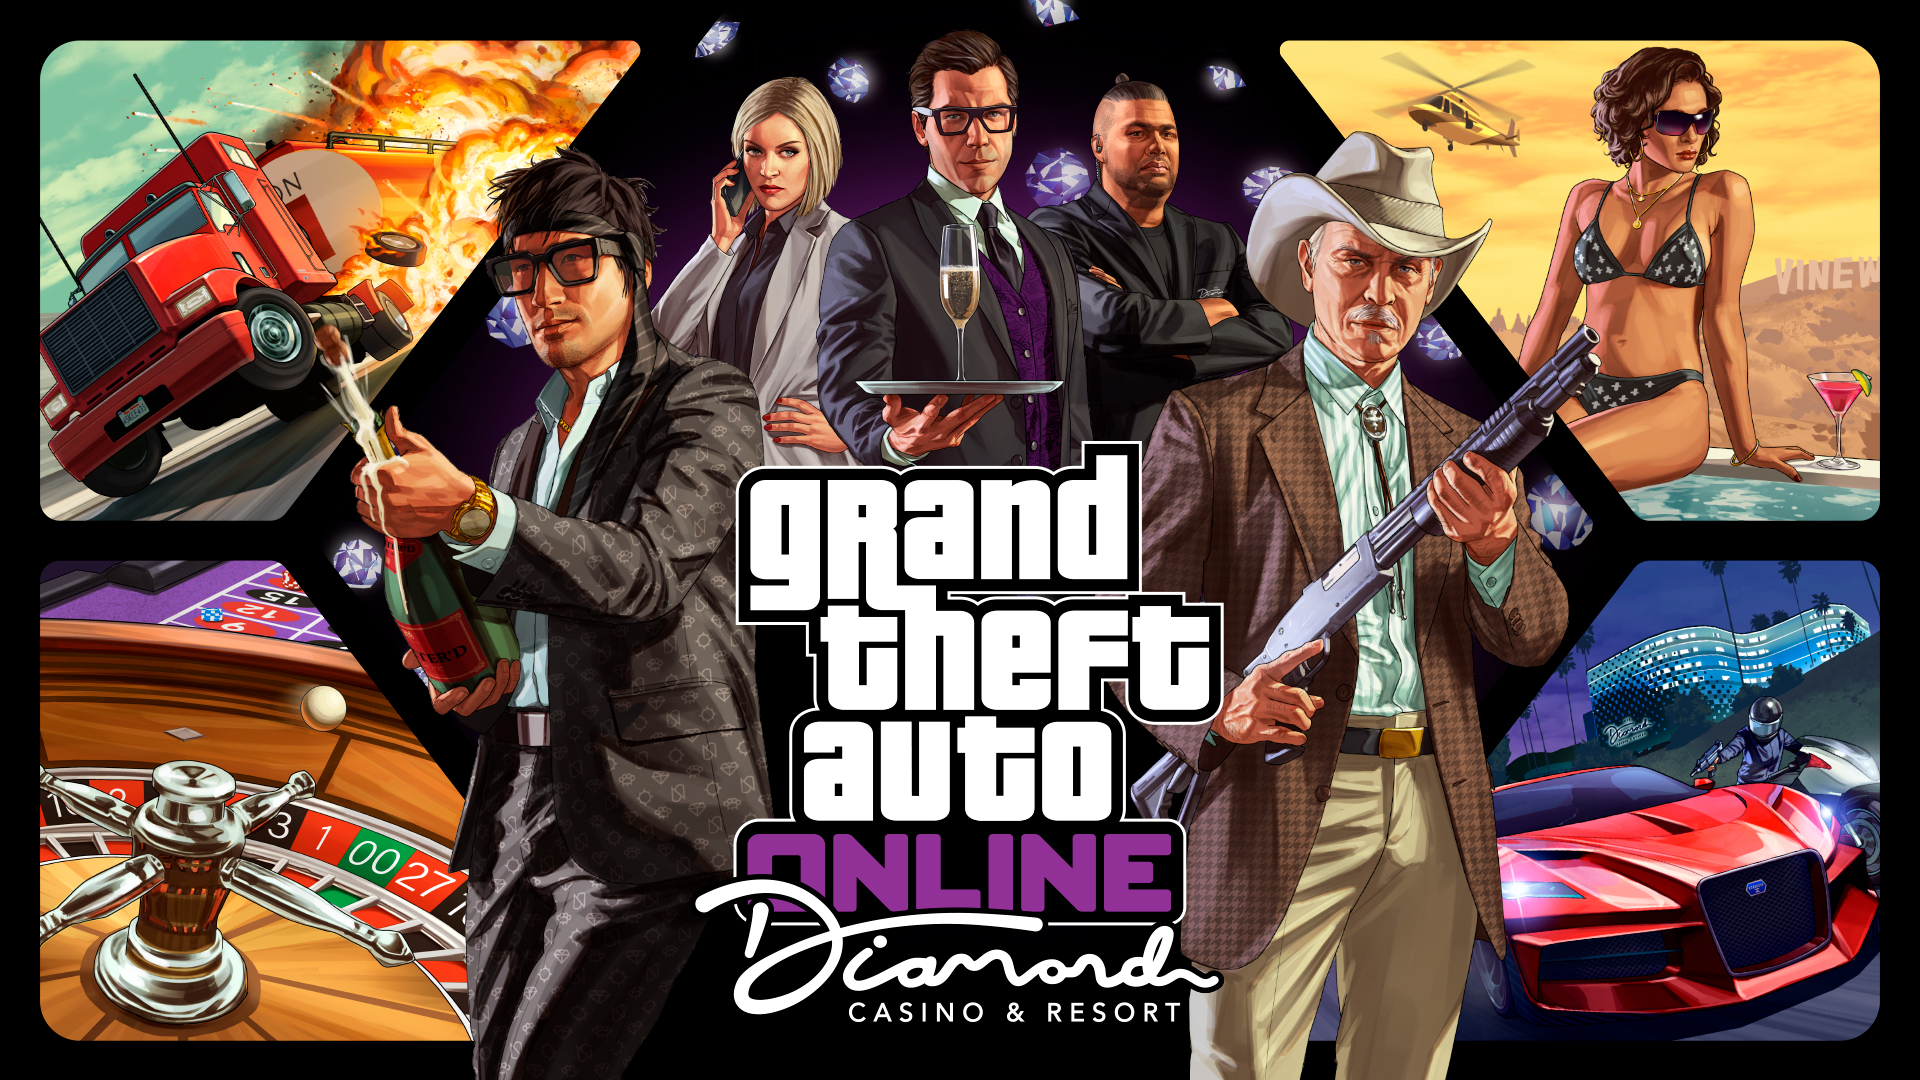 Grand Theft Auto Online Crack + License Key Free Download 2020